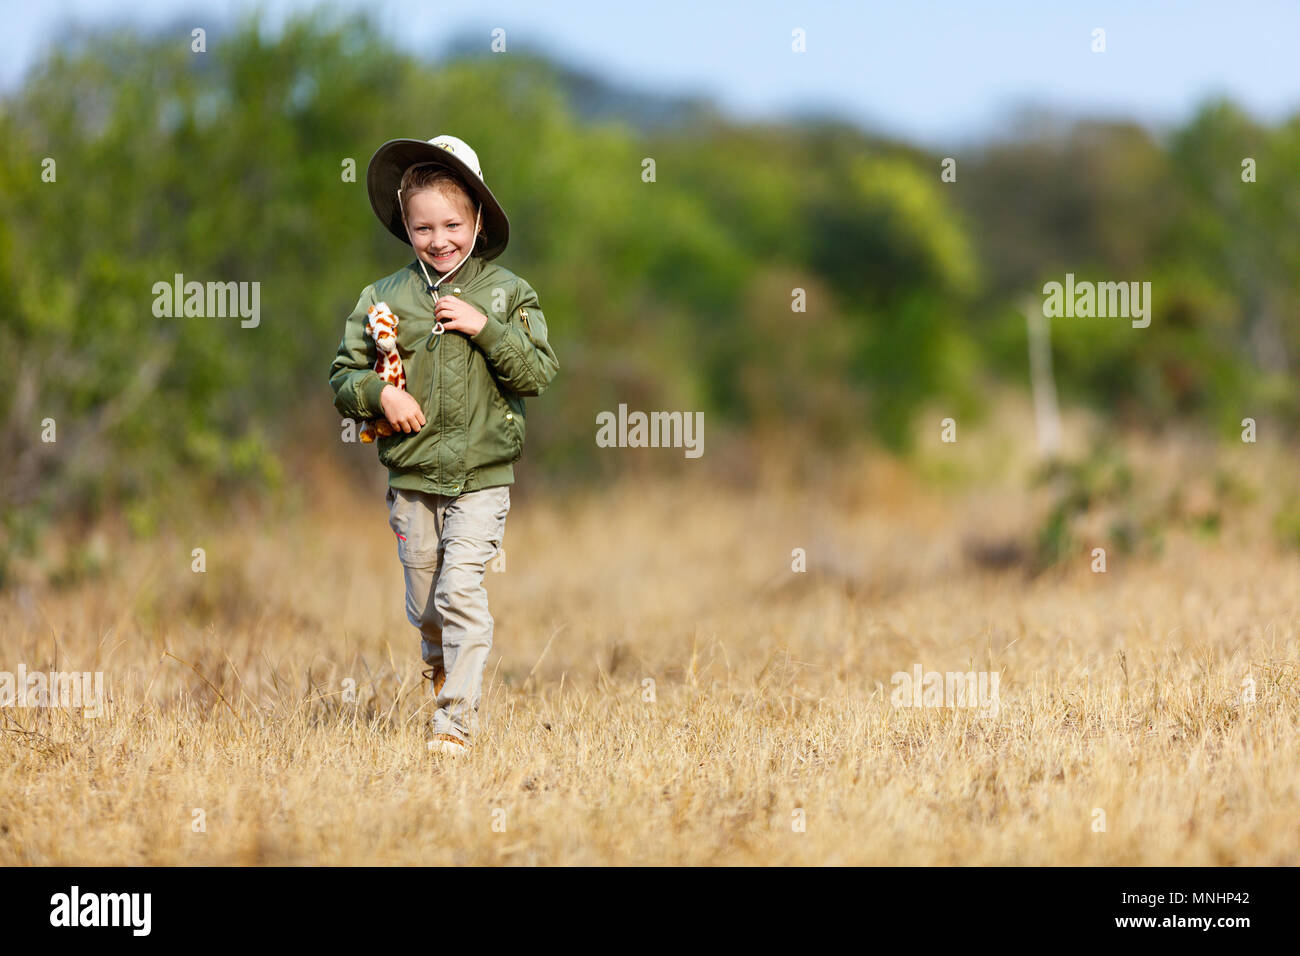 0c67adaa58 Adorable little girl in South Africa safari running in a bush with giraffe  toy - Stock